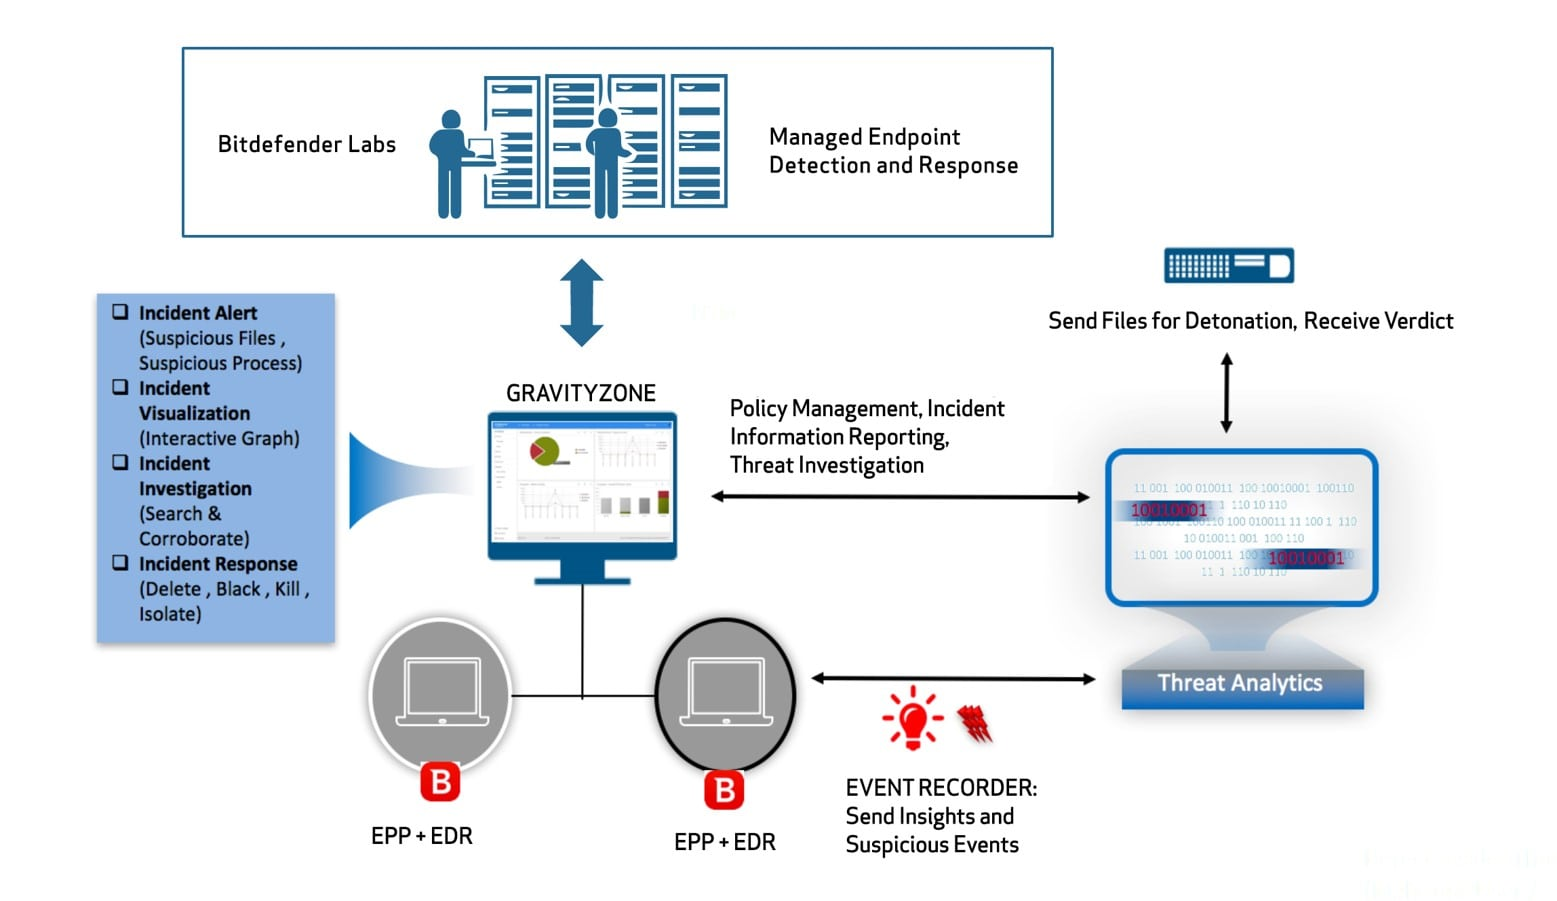 Managed Endpoint Detection e Response Architecture